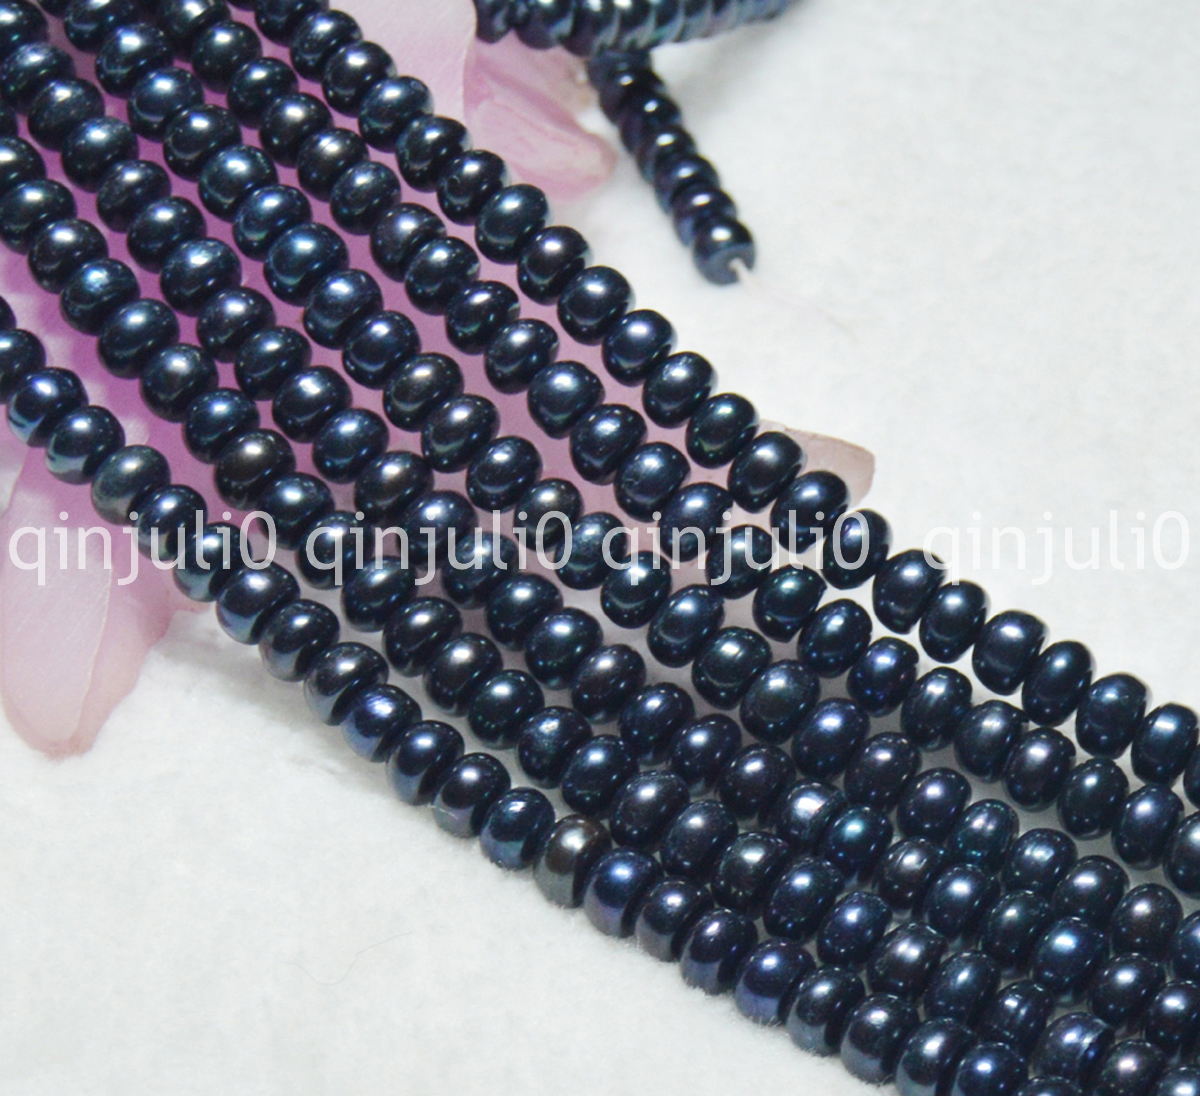 8-9mm Black Akoya Cultured Pearl Loose Beads 15/'/'